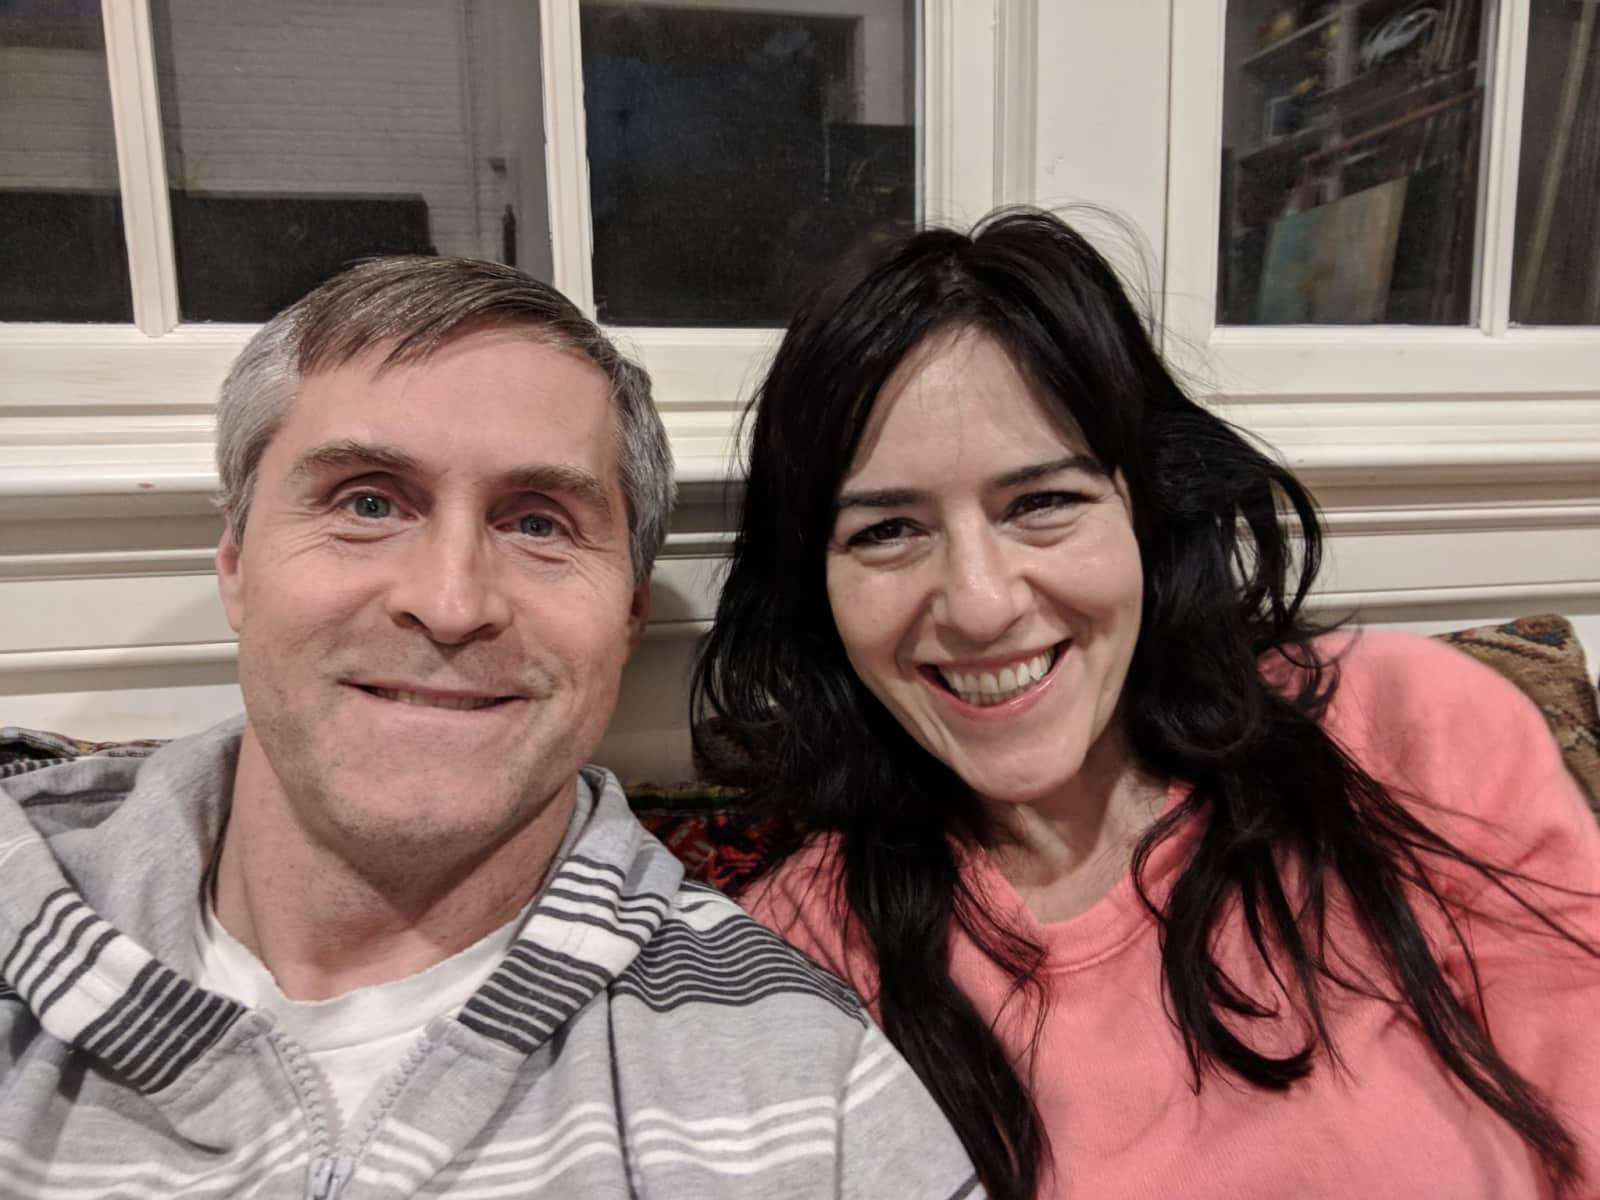 Todd & Nora from Washington, D.C., Washington, D.C., United States